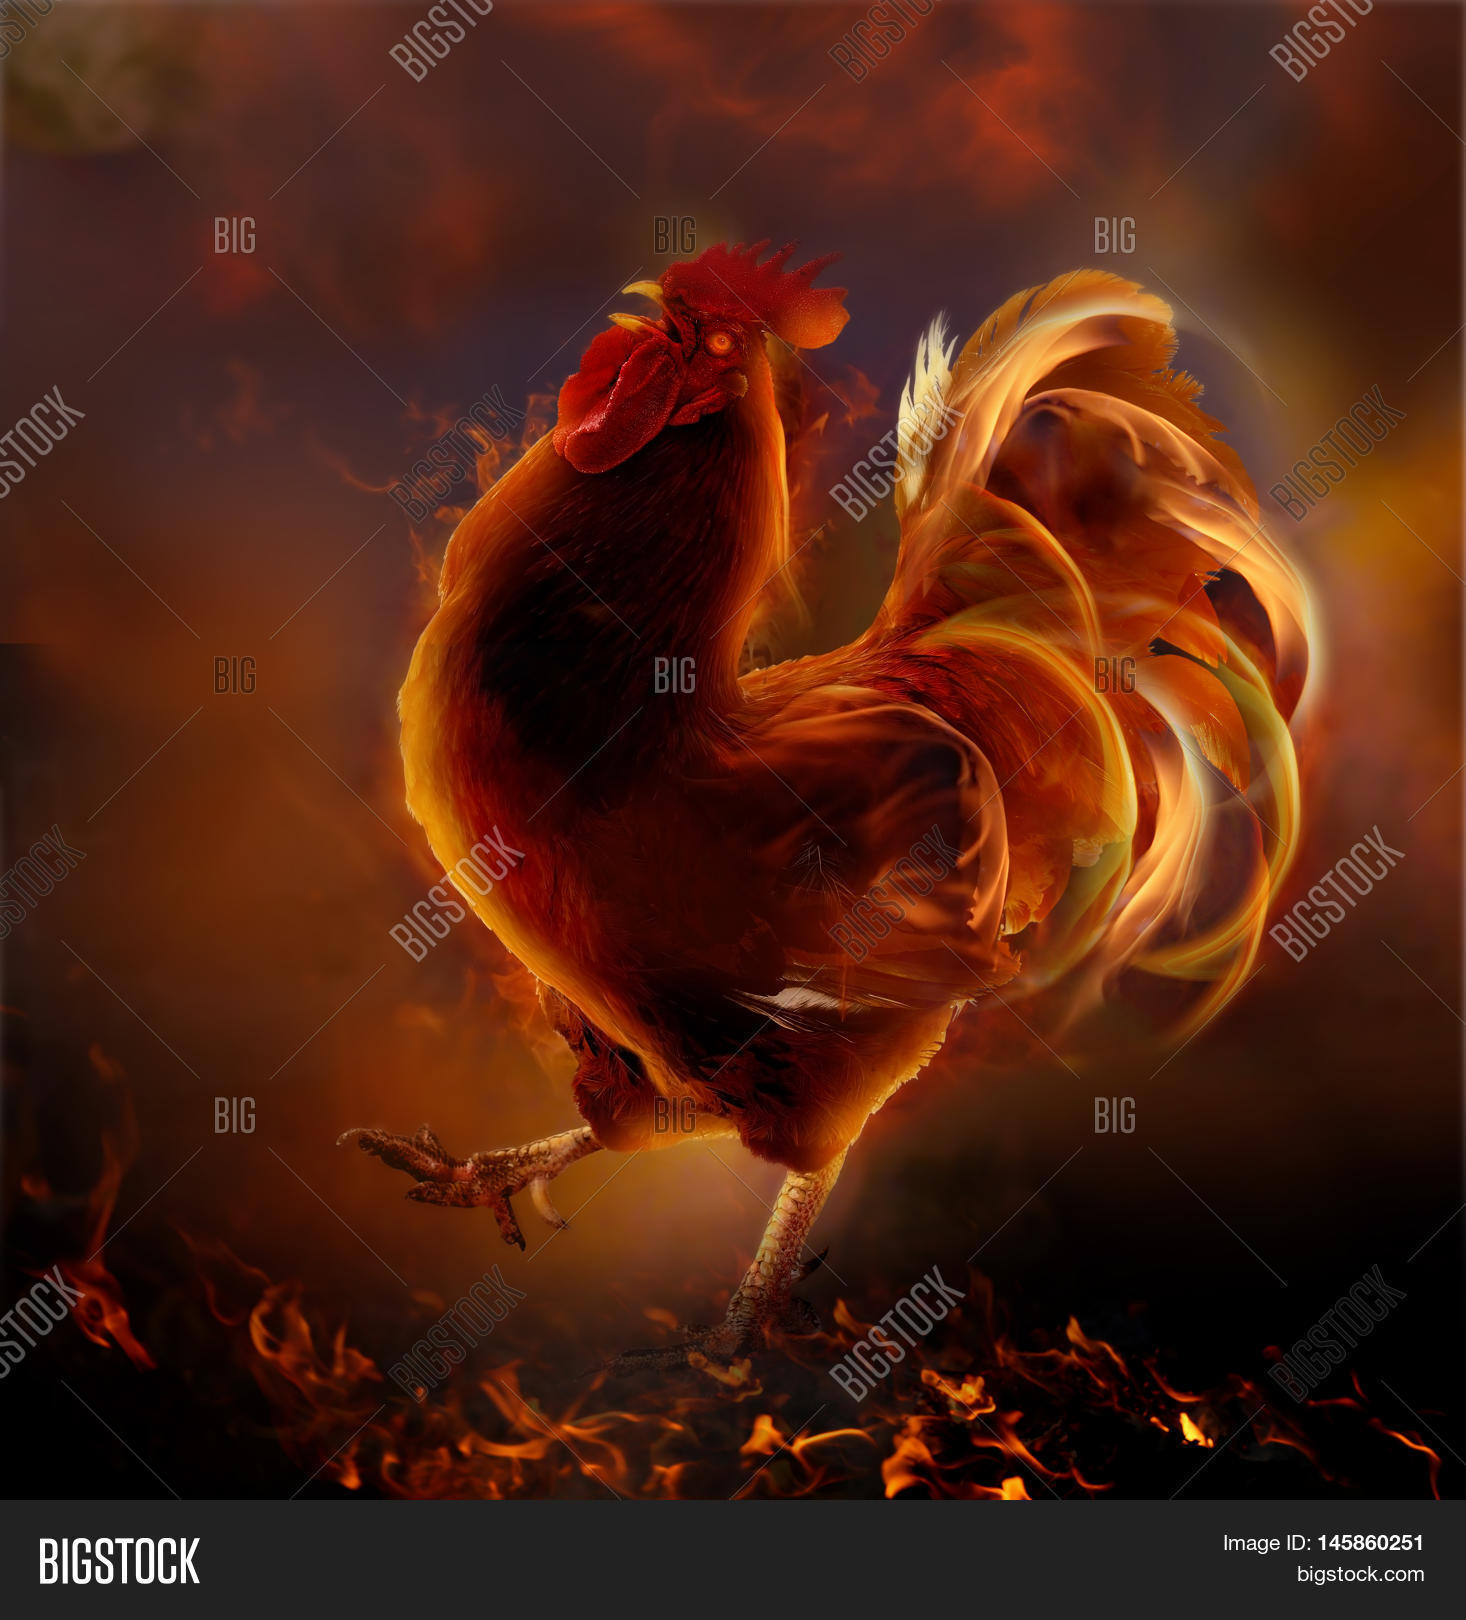 Fire Roostermbol Image Photo Free Trial Bigstock